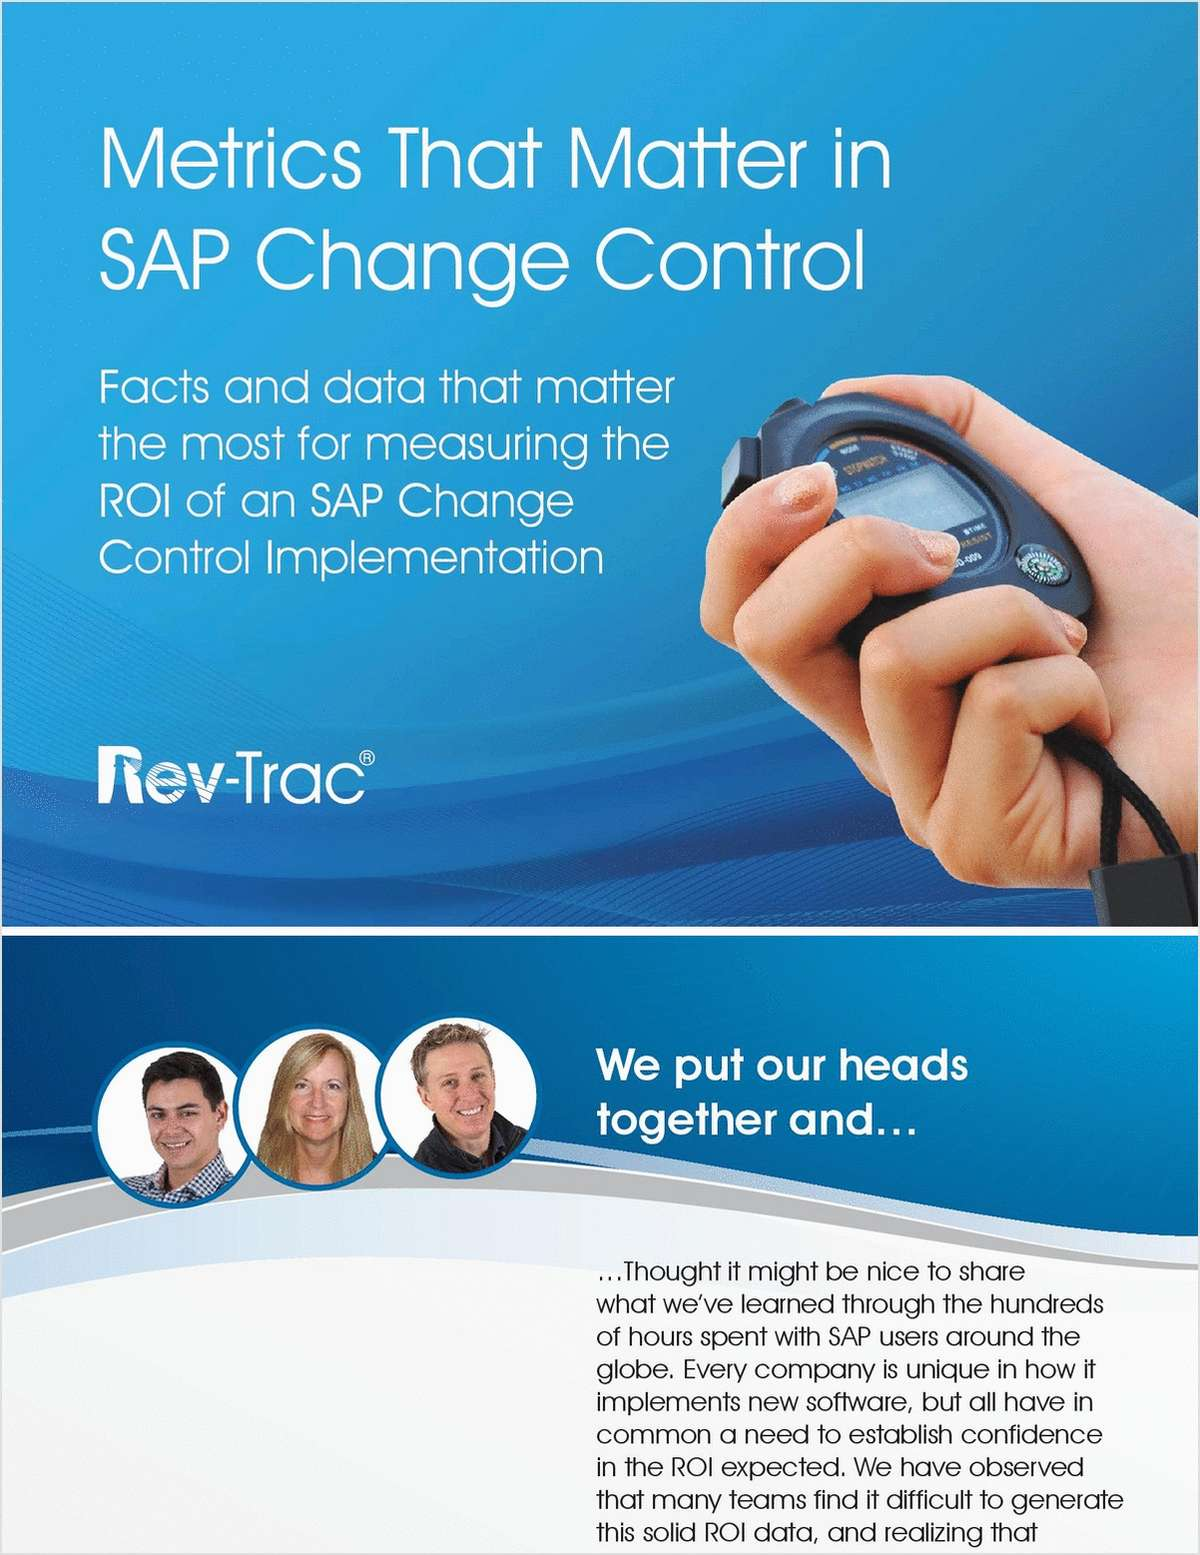 Metrics That Matter in SAP Change Control